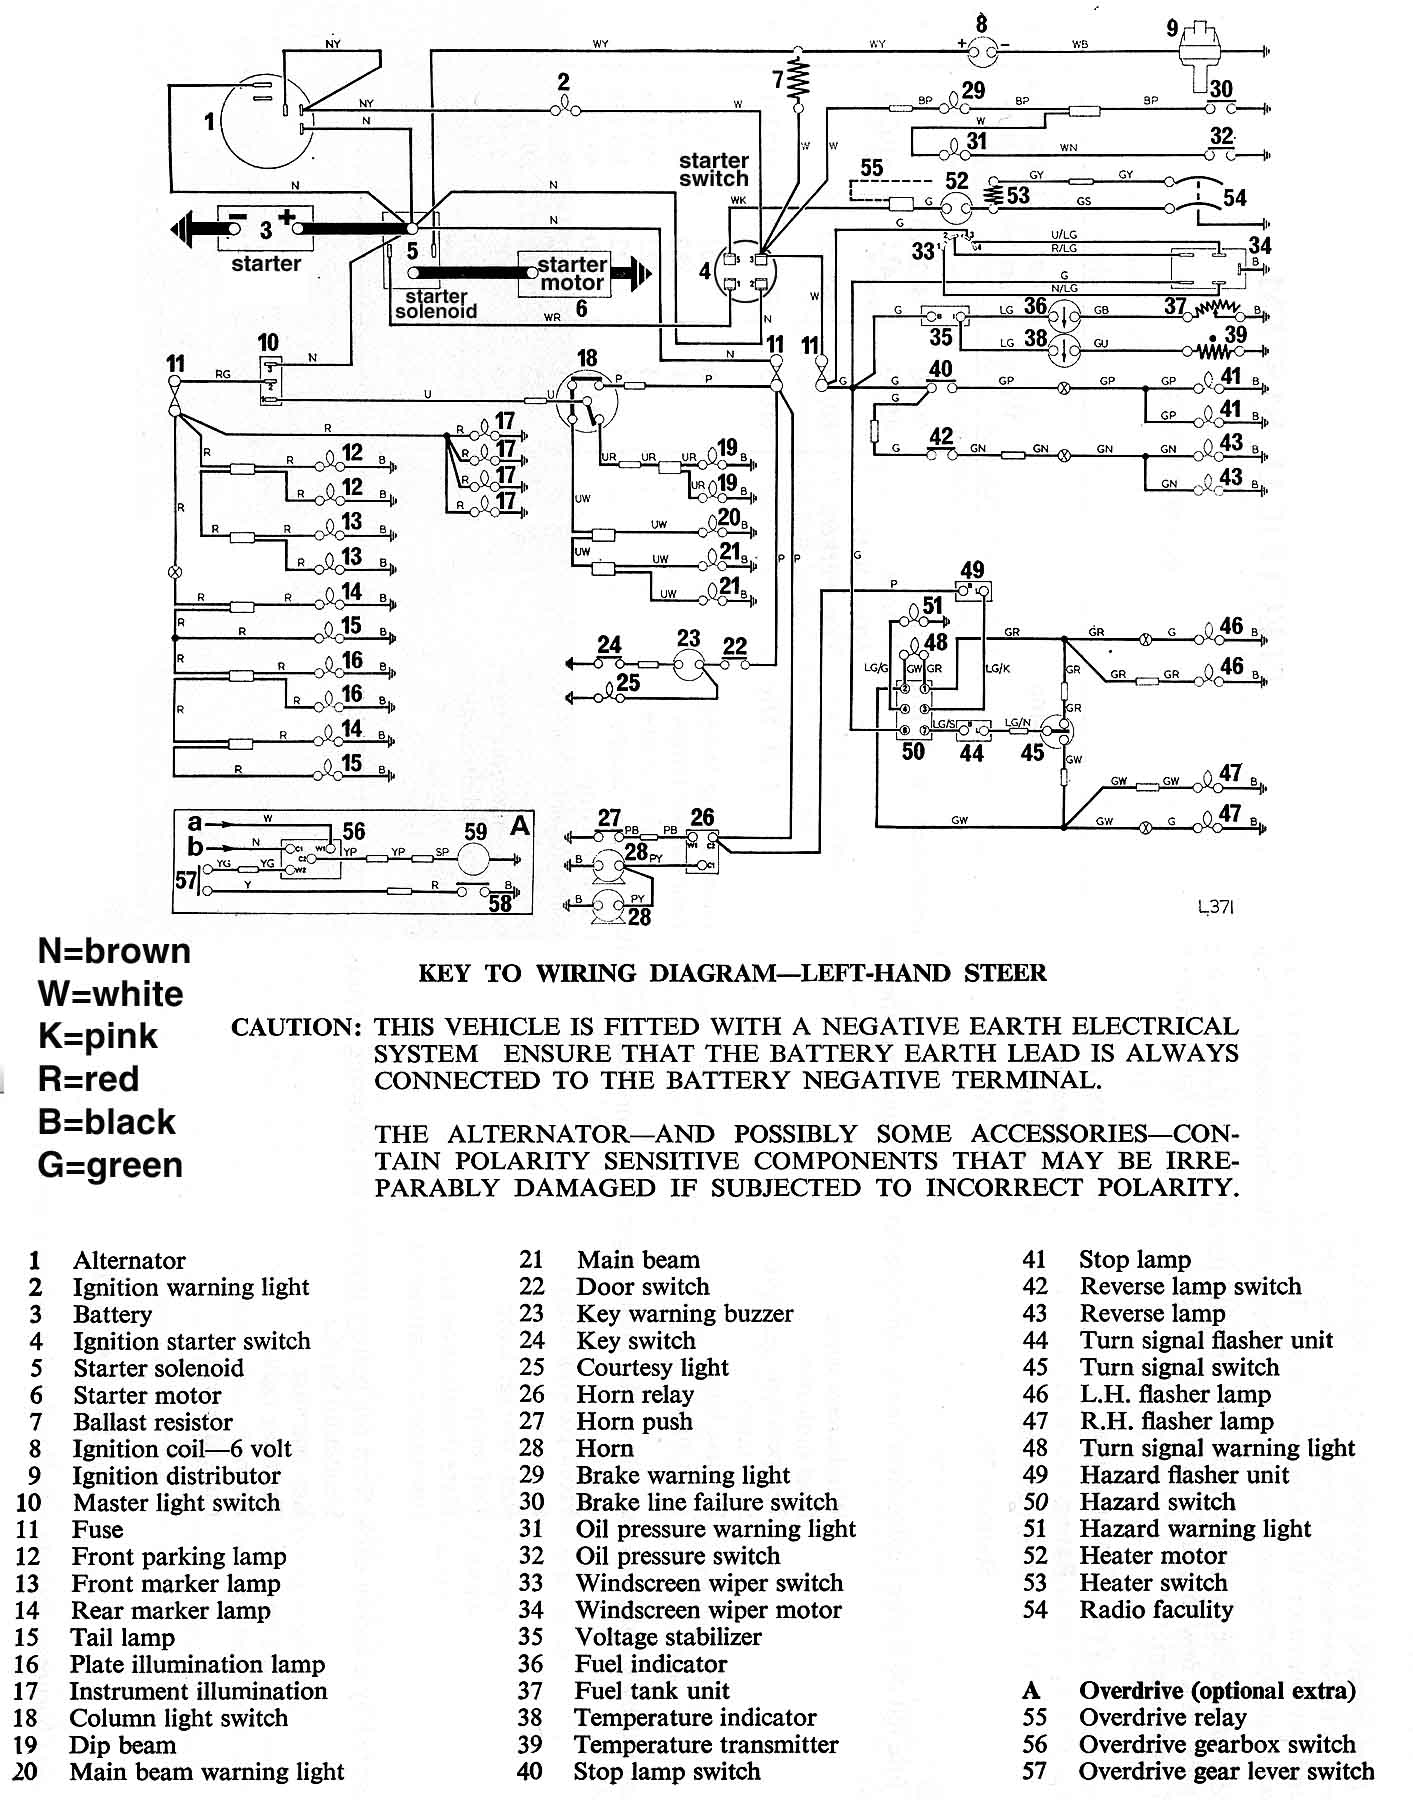 MKIVwire wiring schematics and diagrams triumph spitfire, gt6, herald Miata Ignition Wiring at mifinder.co